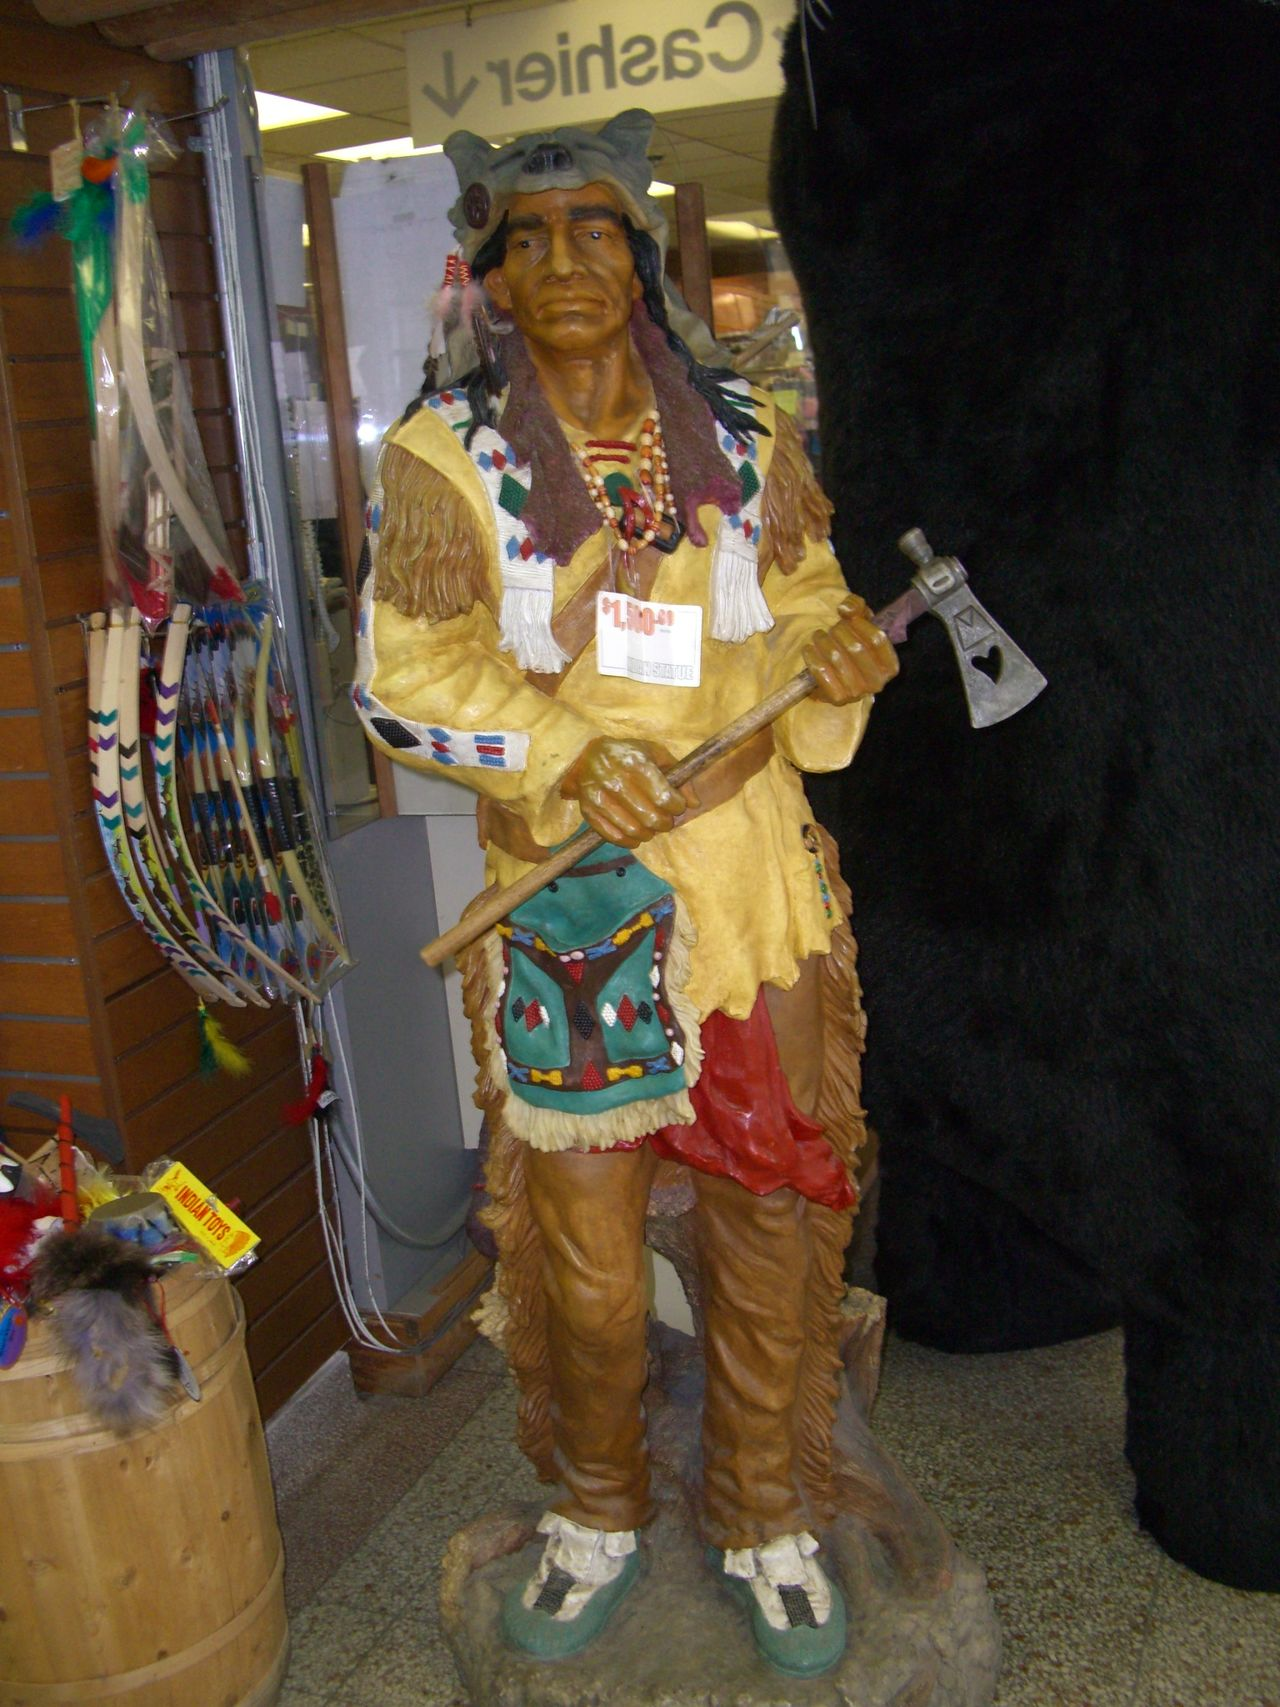 Canadian Indian Statue Canada Canadian Indian Composition Display Dummy Full Frame Human Representation Indoor Photography Lifestyles Market Stall Niagara Niagara Falls No People Retail  Shop Shop Dummy Small Business Statue Store Tourist Destination Traditional Clothes